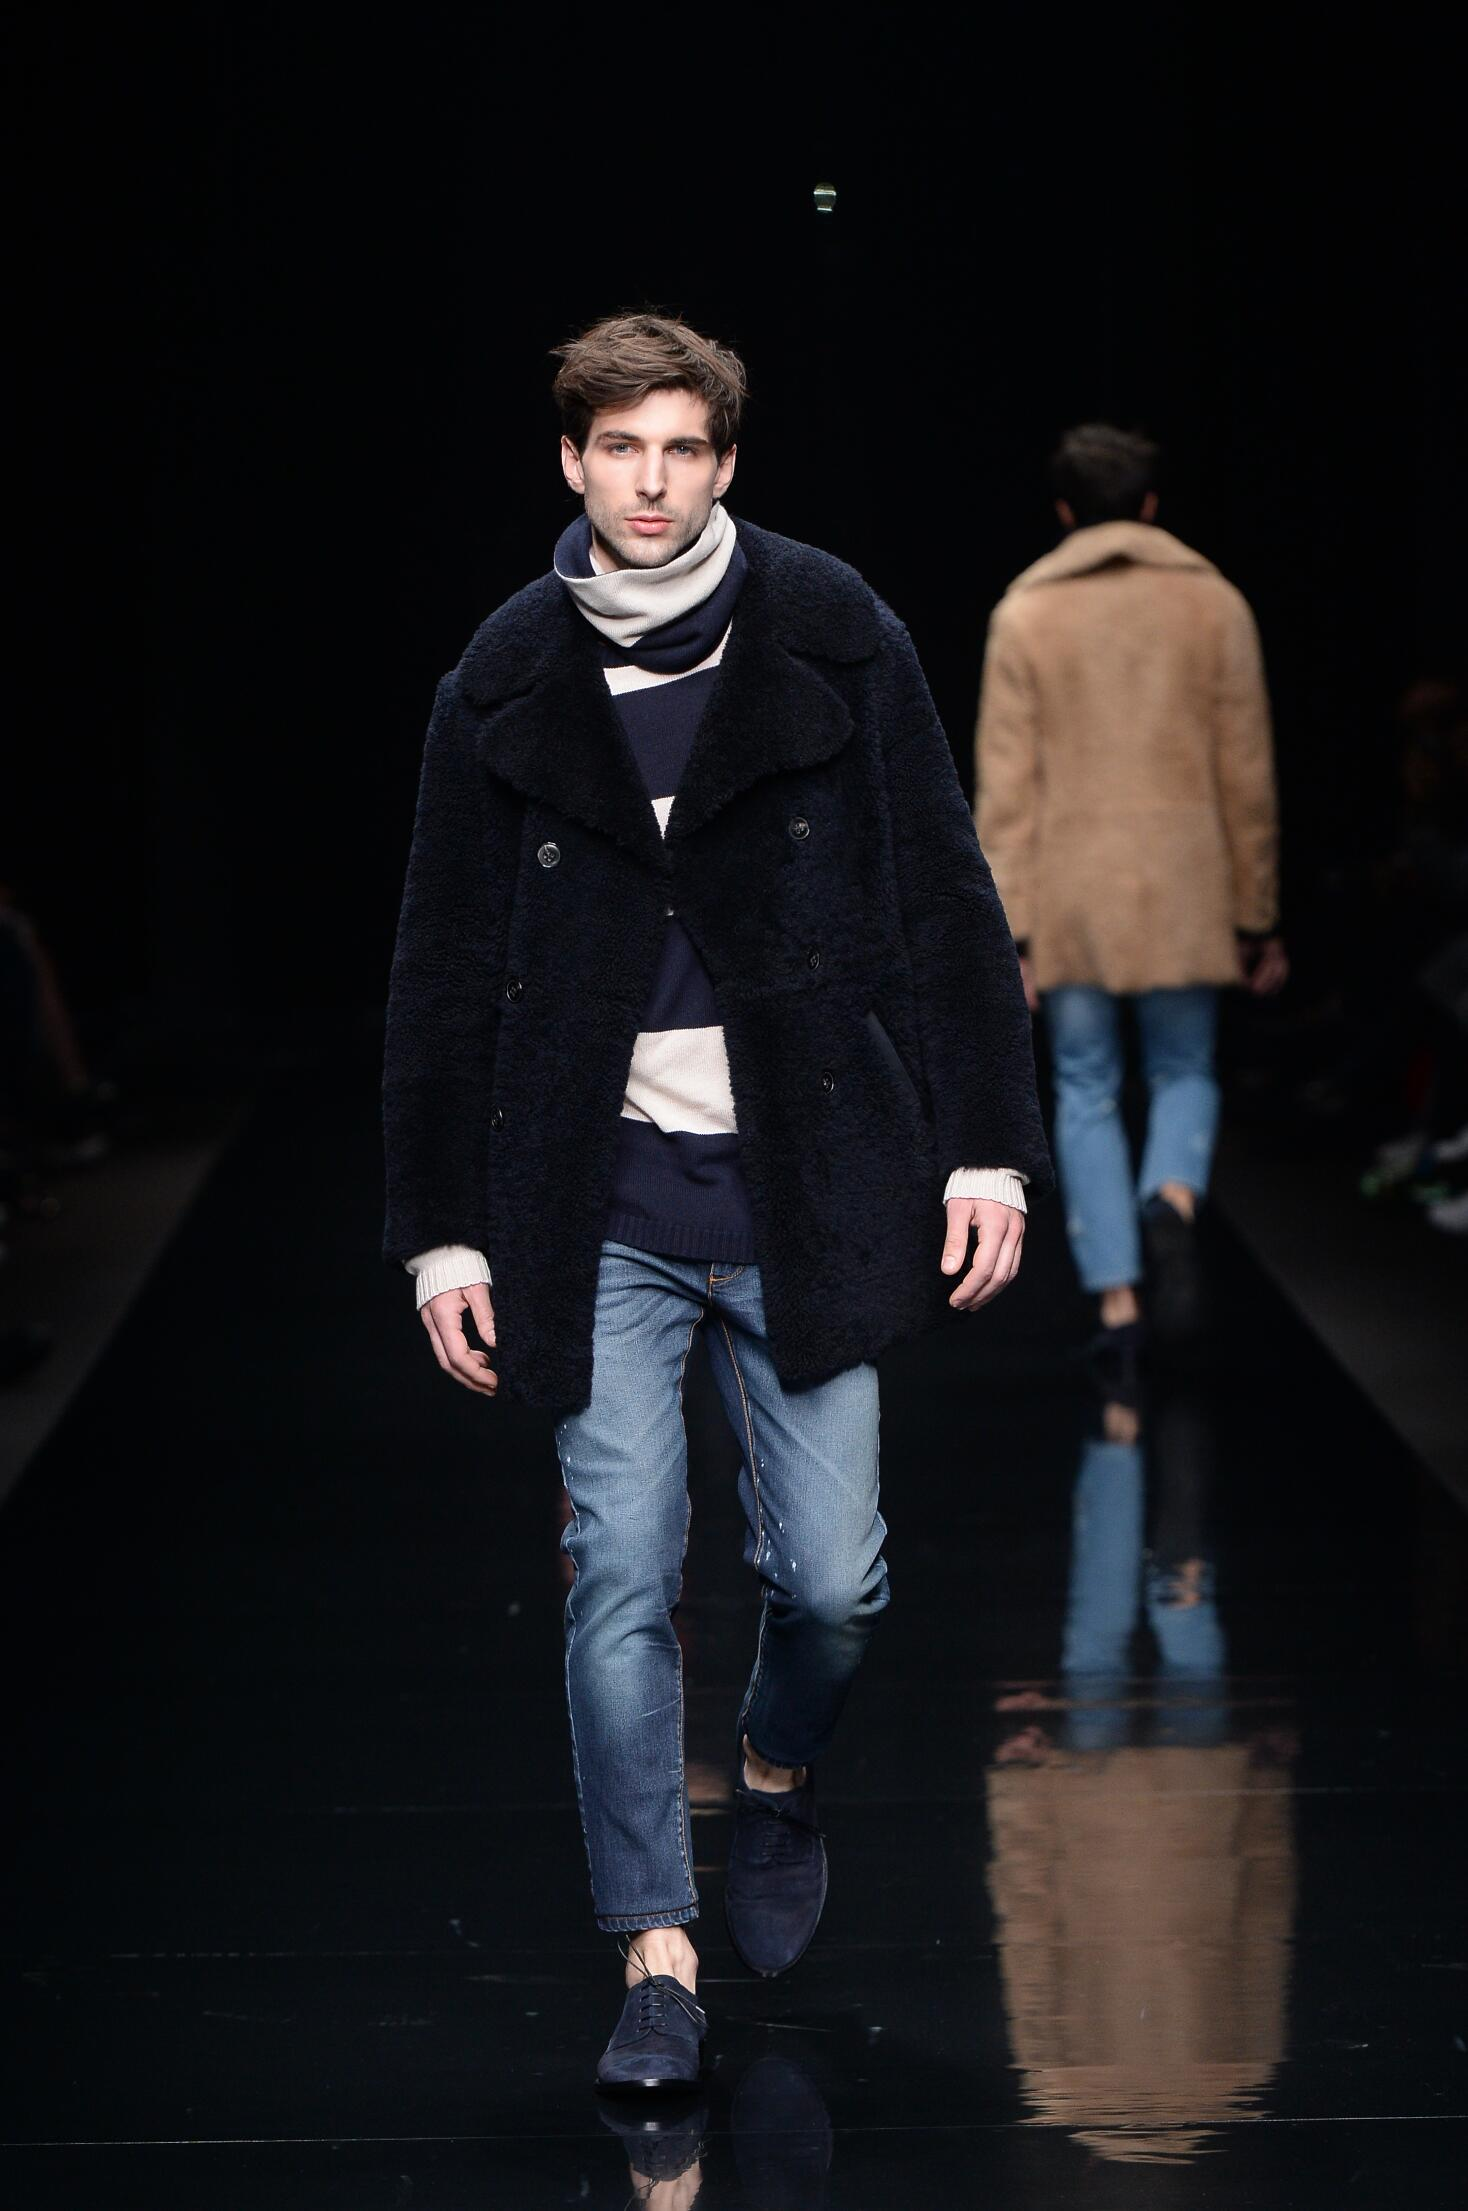 Runway Ermanno Scervino Fall Winter 2015 16 Men's Collection Milan Fashion Week